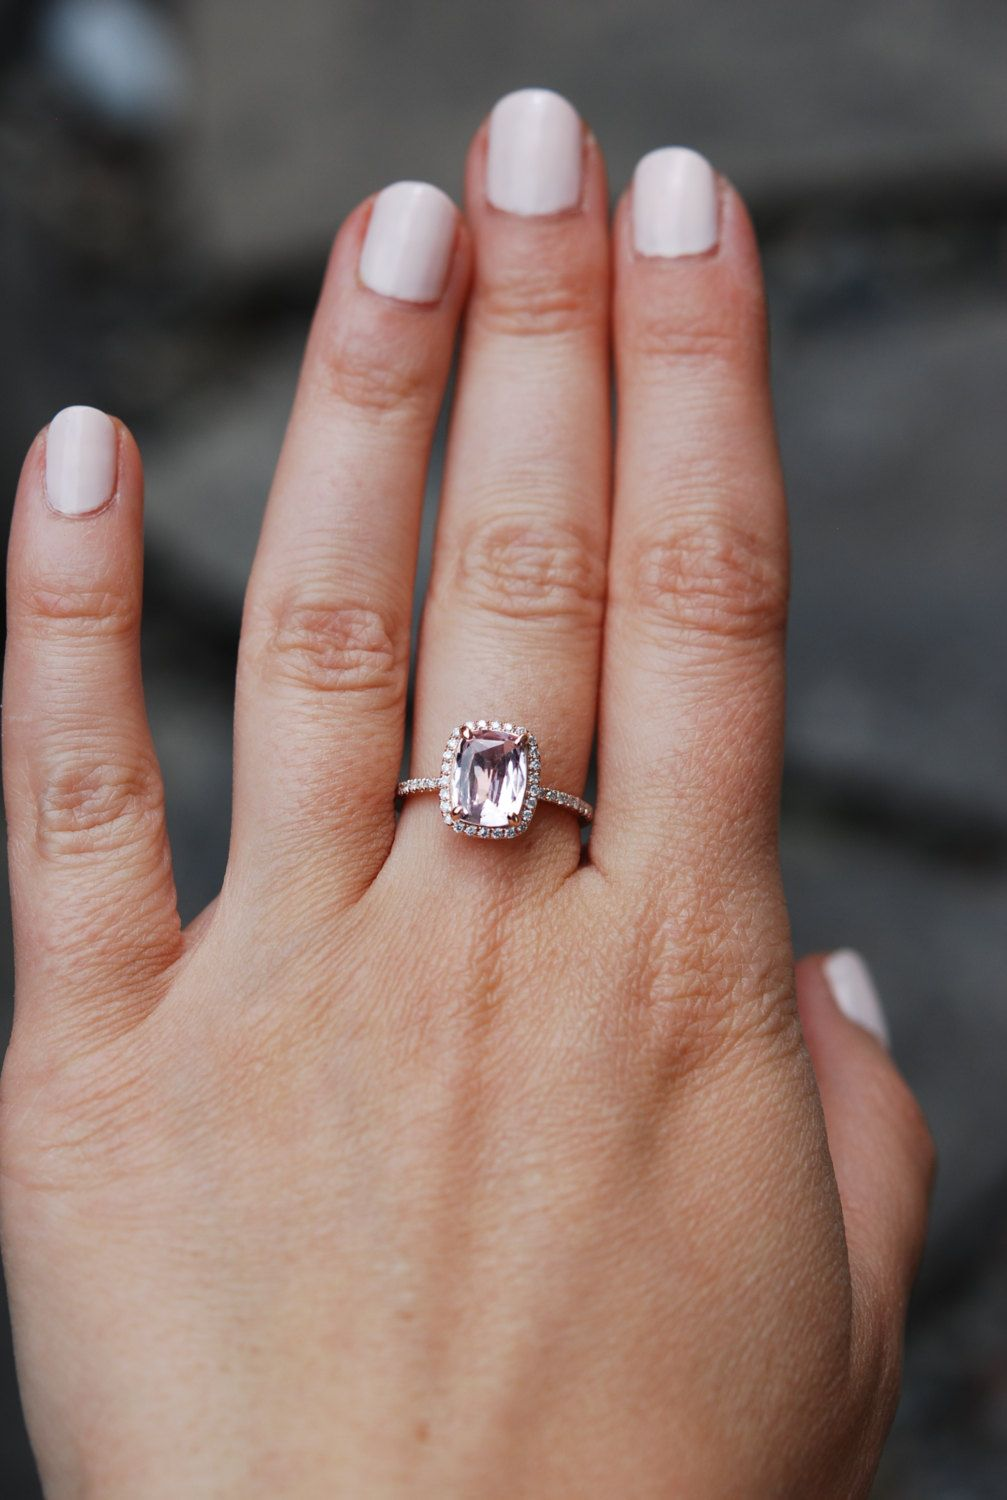 Peach sapphire ring k rose gold diamond engagement ring